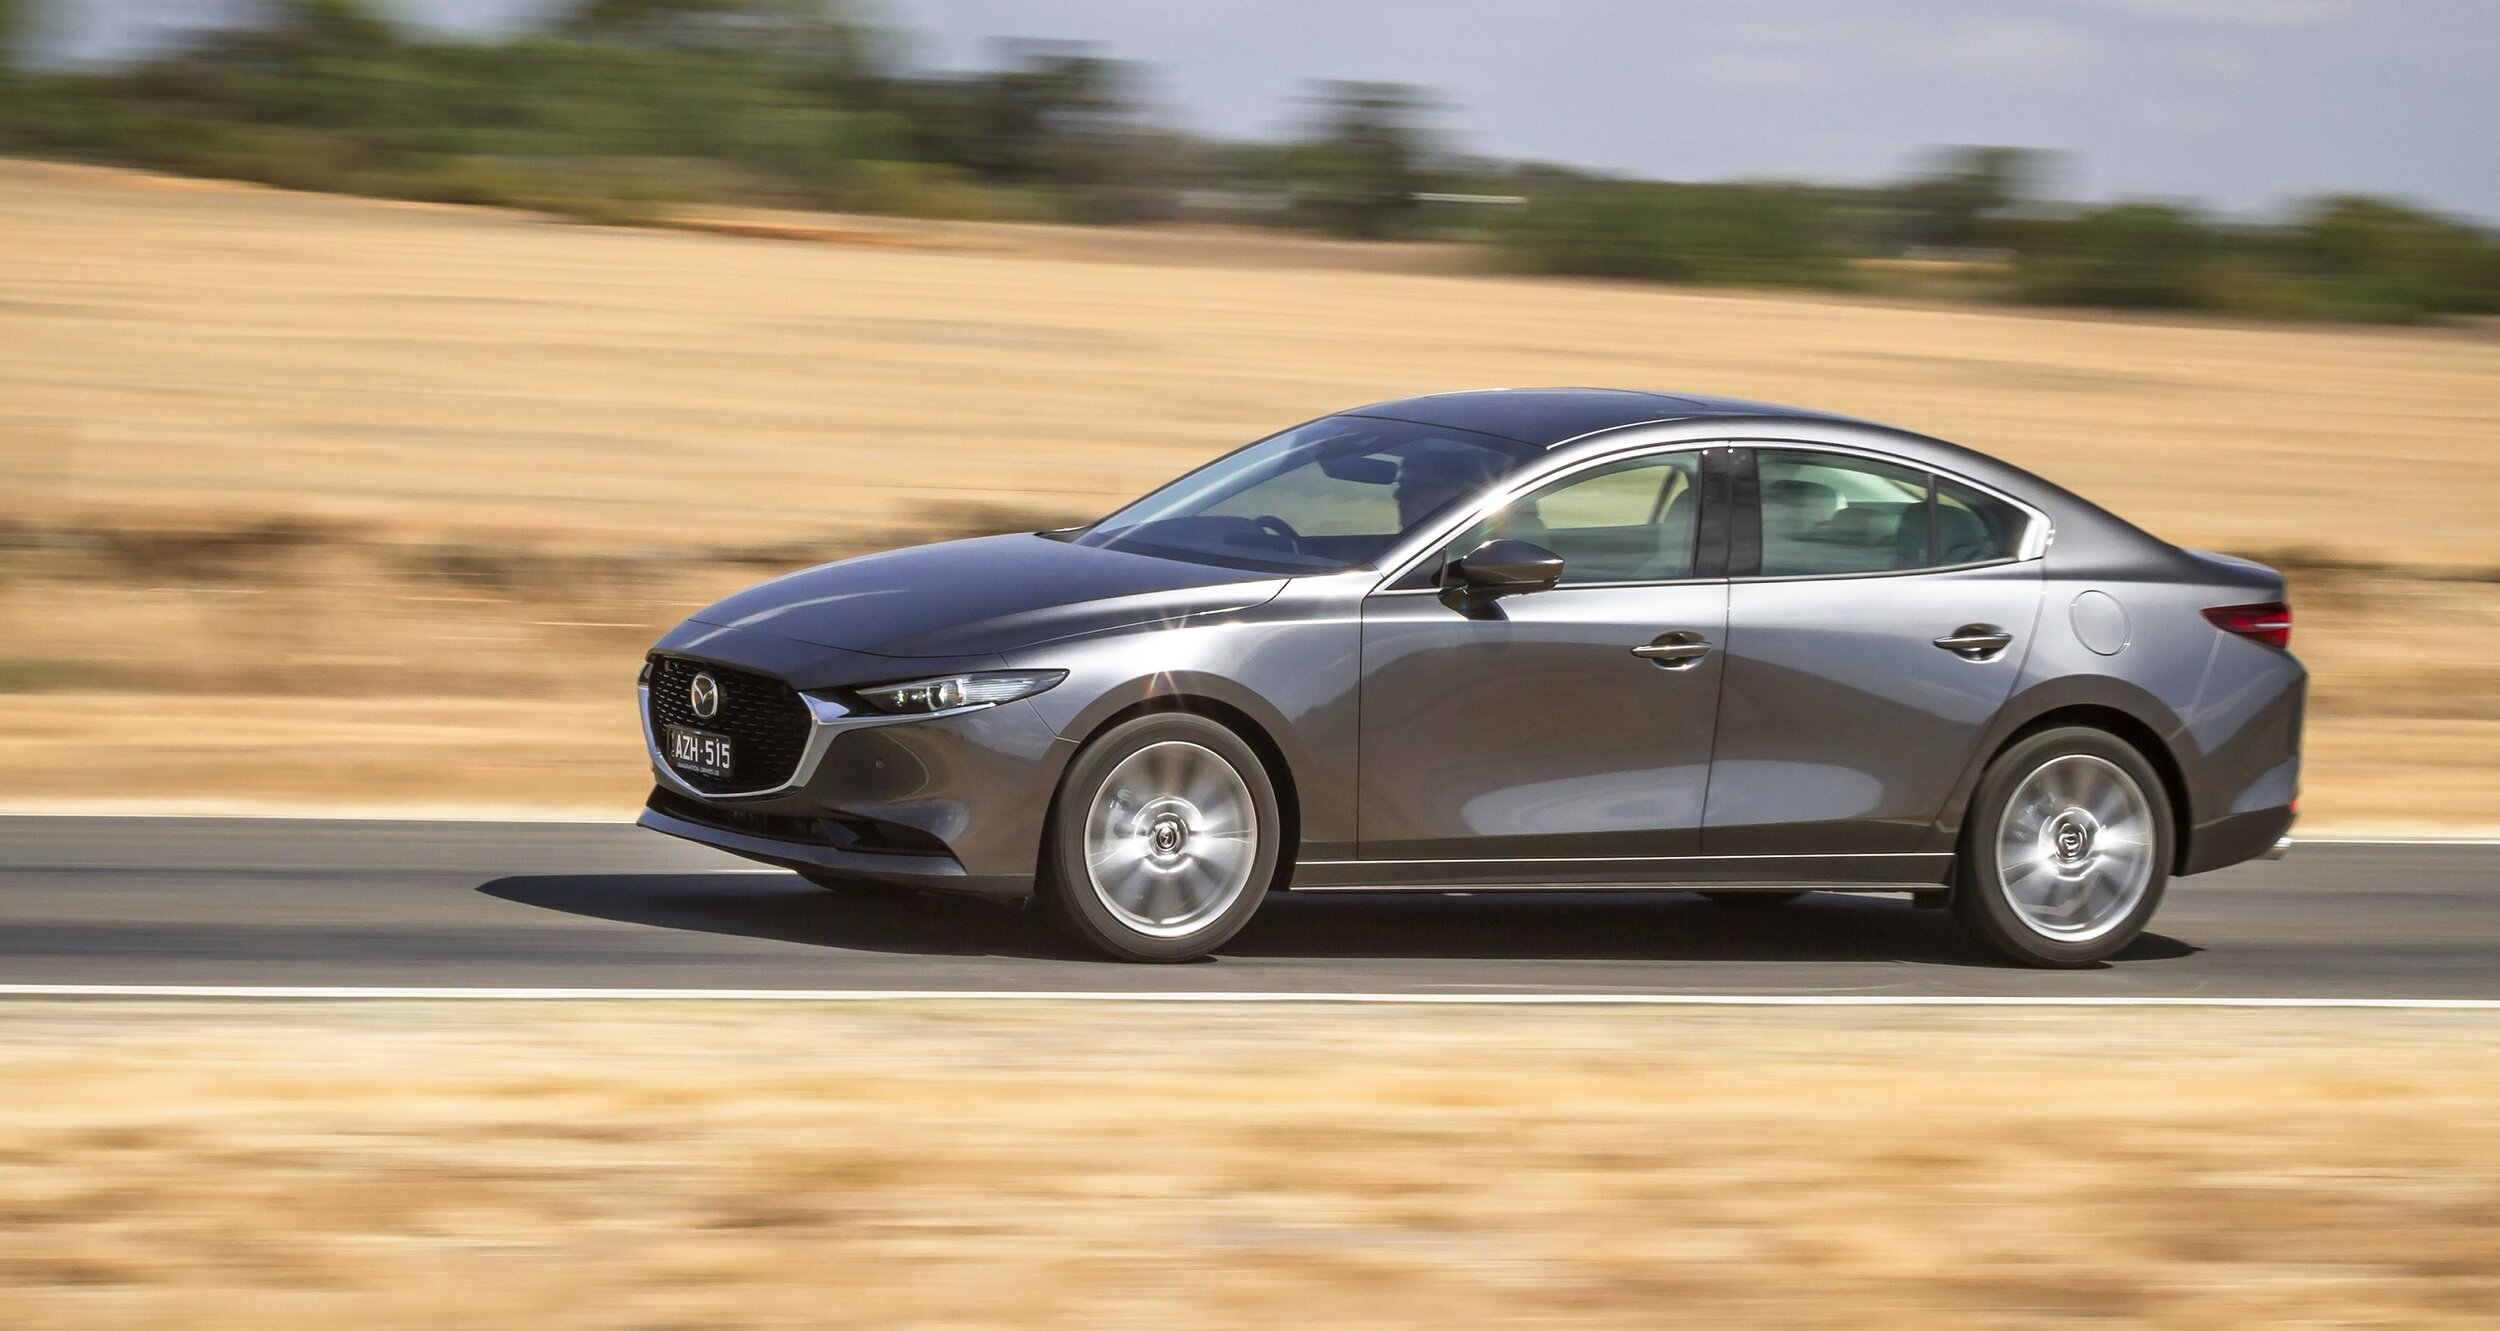 Mazda3sedan2019-ThomasWielecki-037.JPG